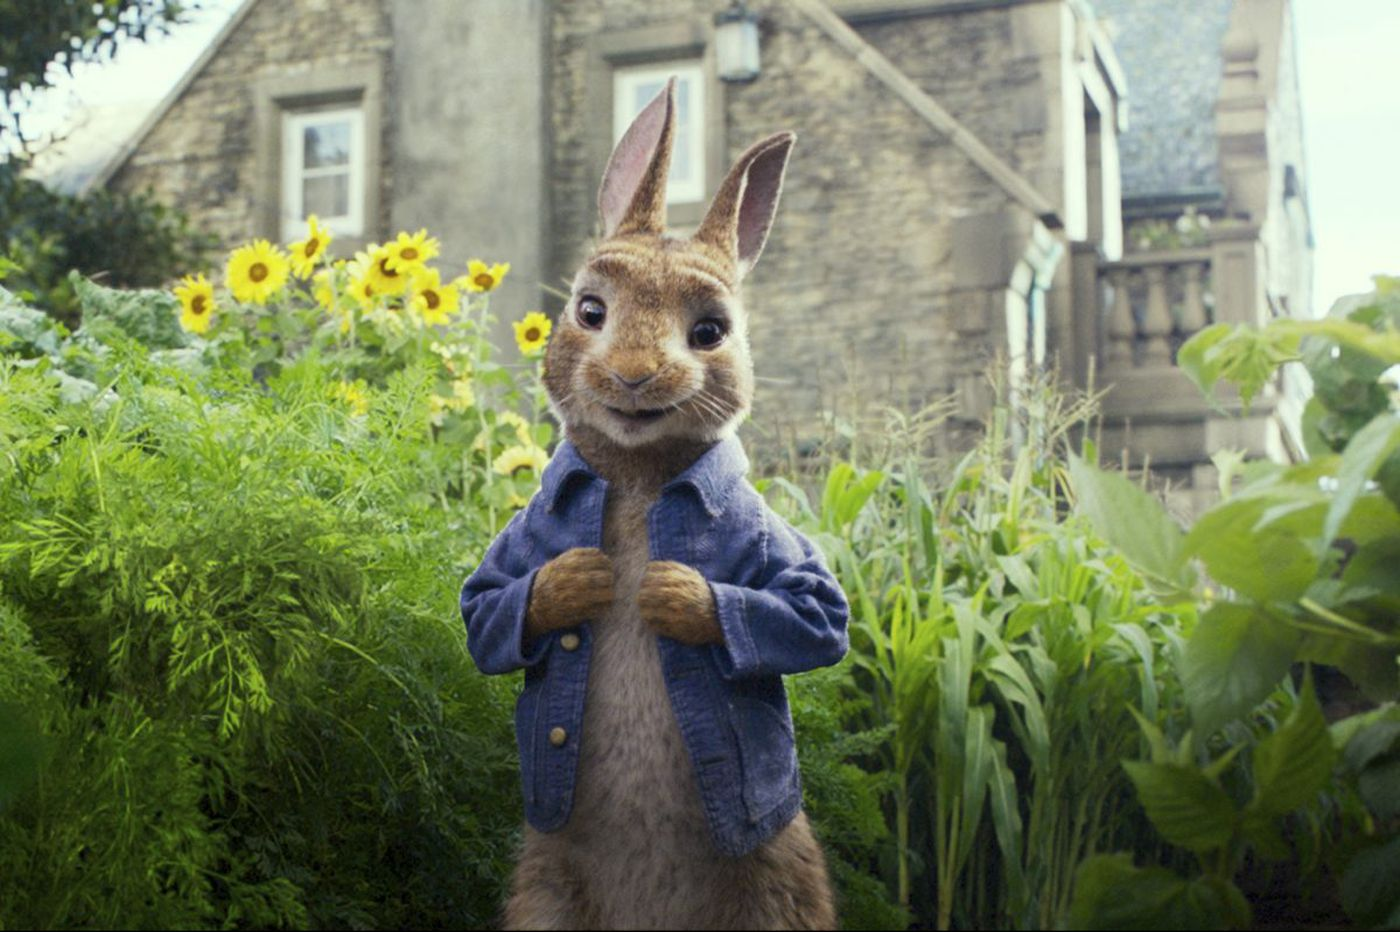 Food allergies are no joke, say parents angry over new 'Peter Rabbit' movie